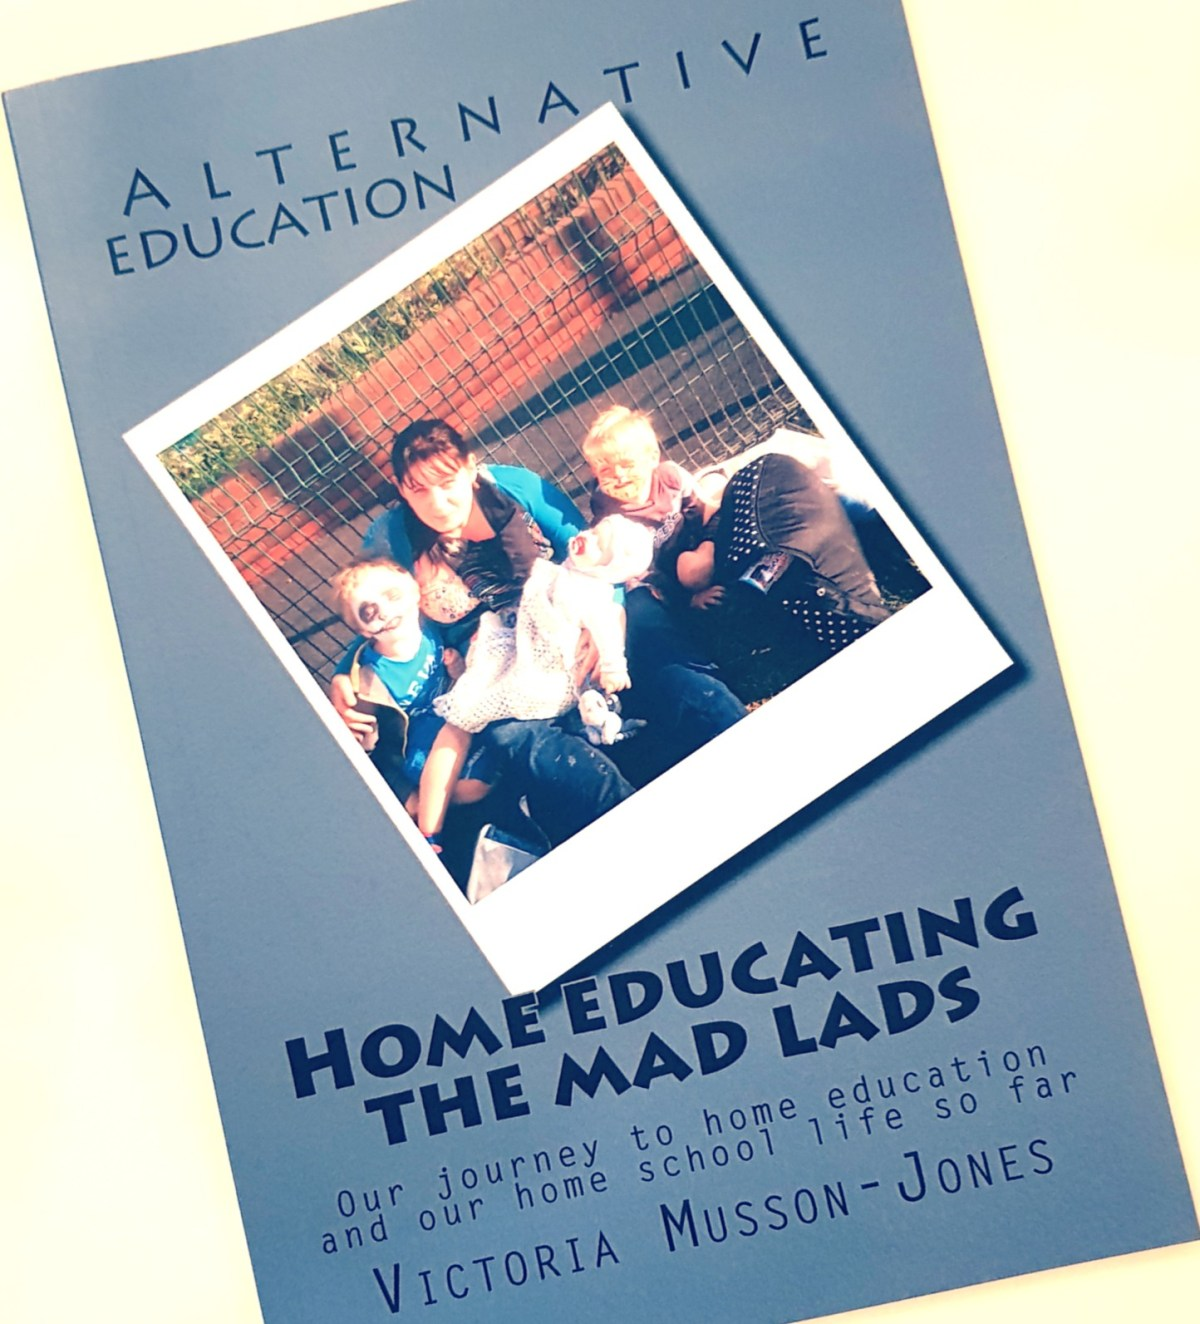 Home Educating The Mad Lads by Victoria Musson – Jones: Review and Giveaway